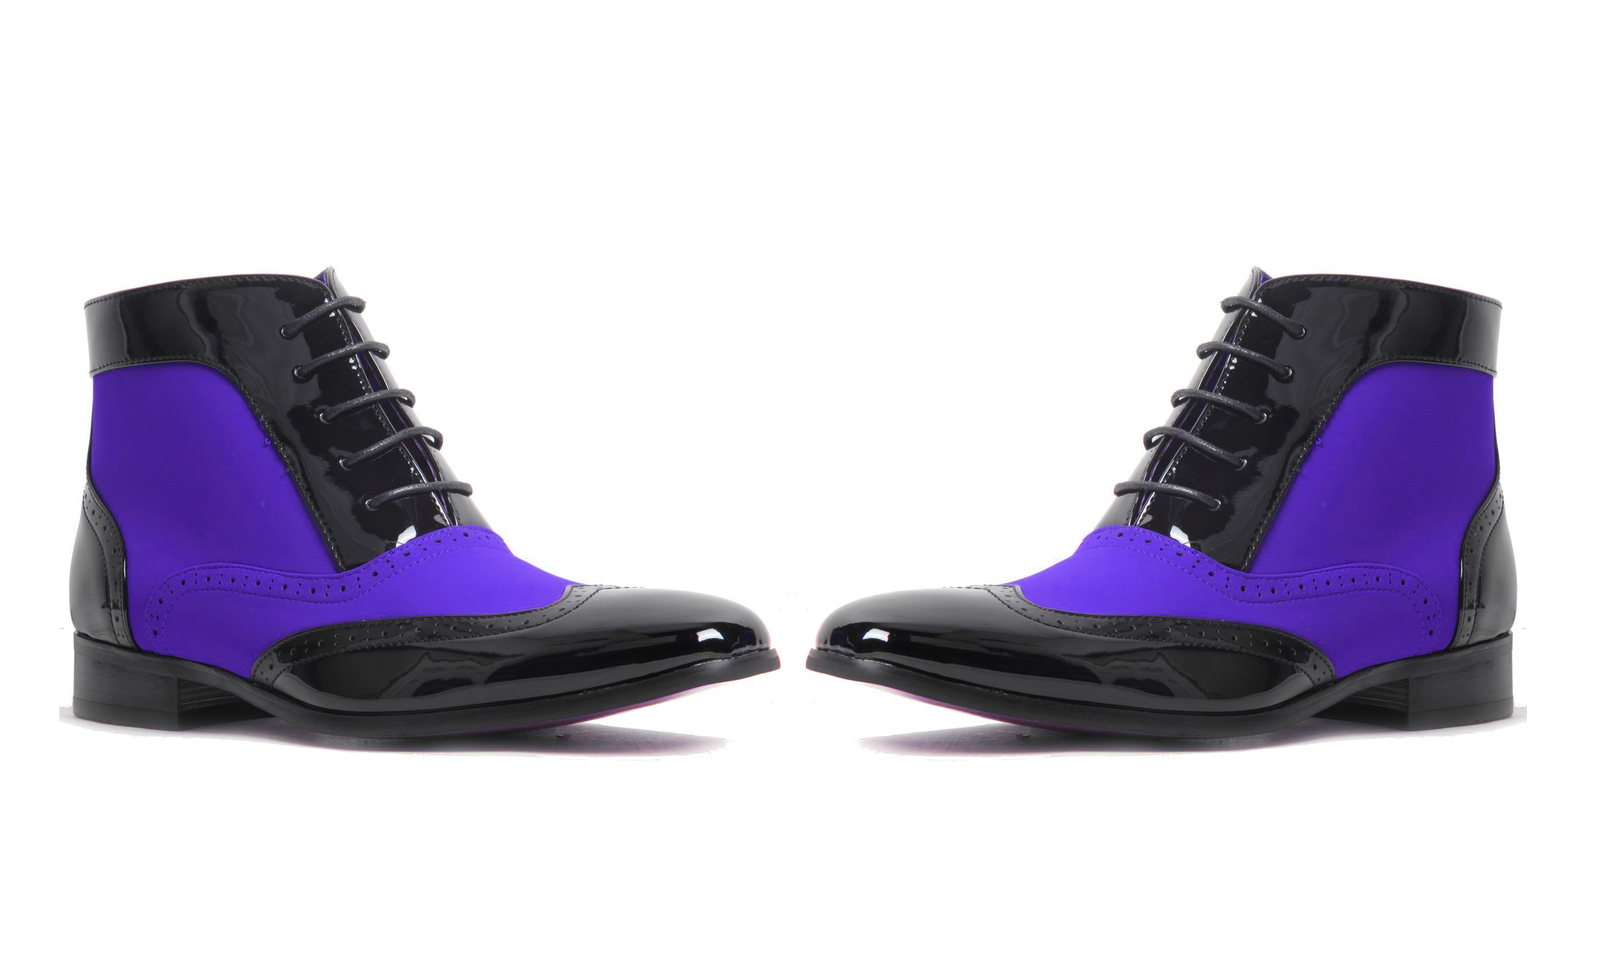 798f6eabbf4 Wo tone color blue black patent leather boots handmade wing tip ankle high  lace up men